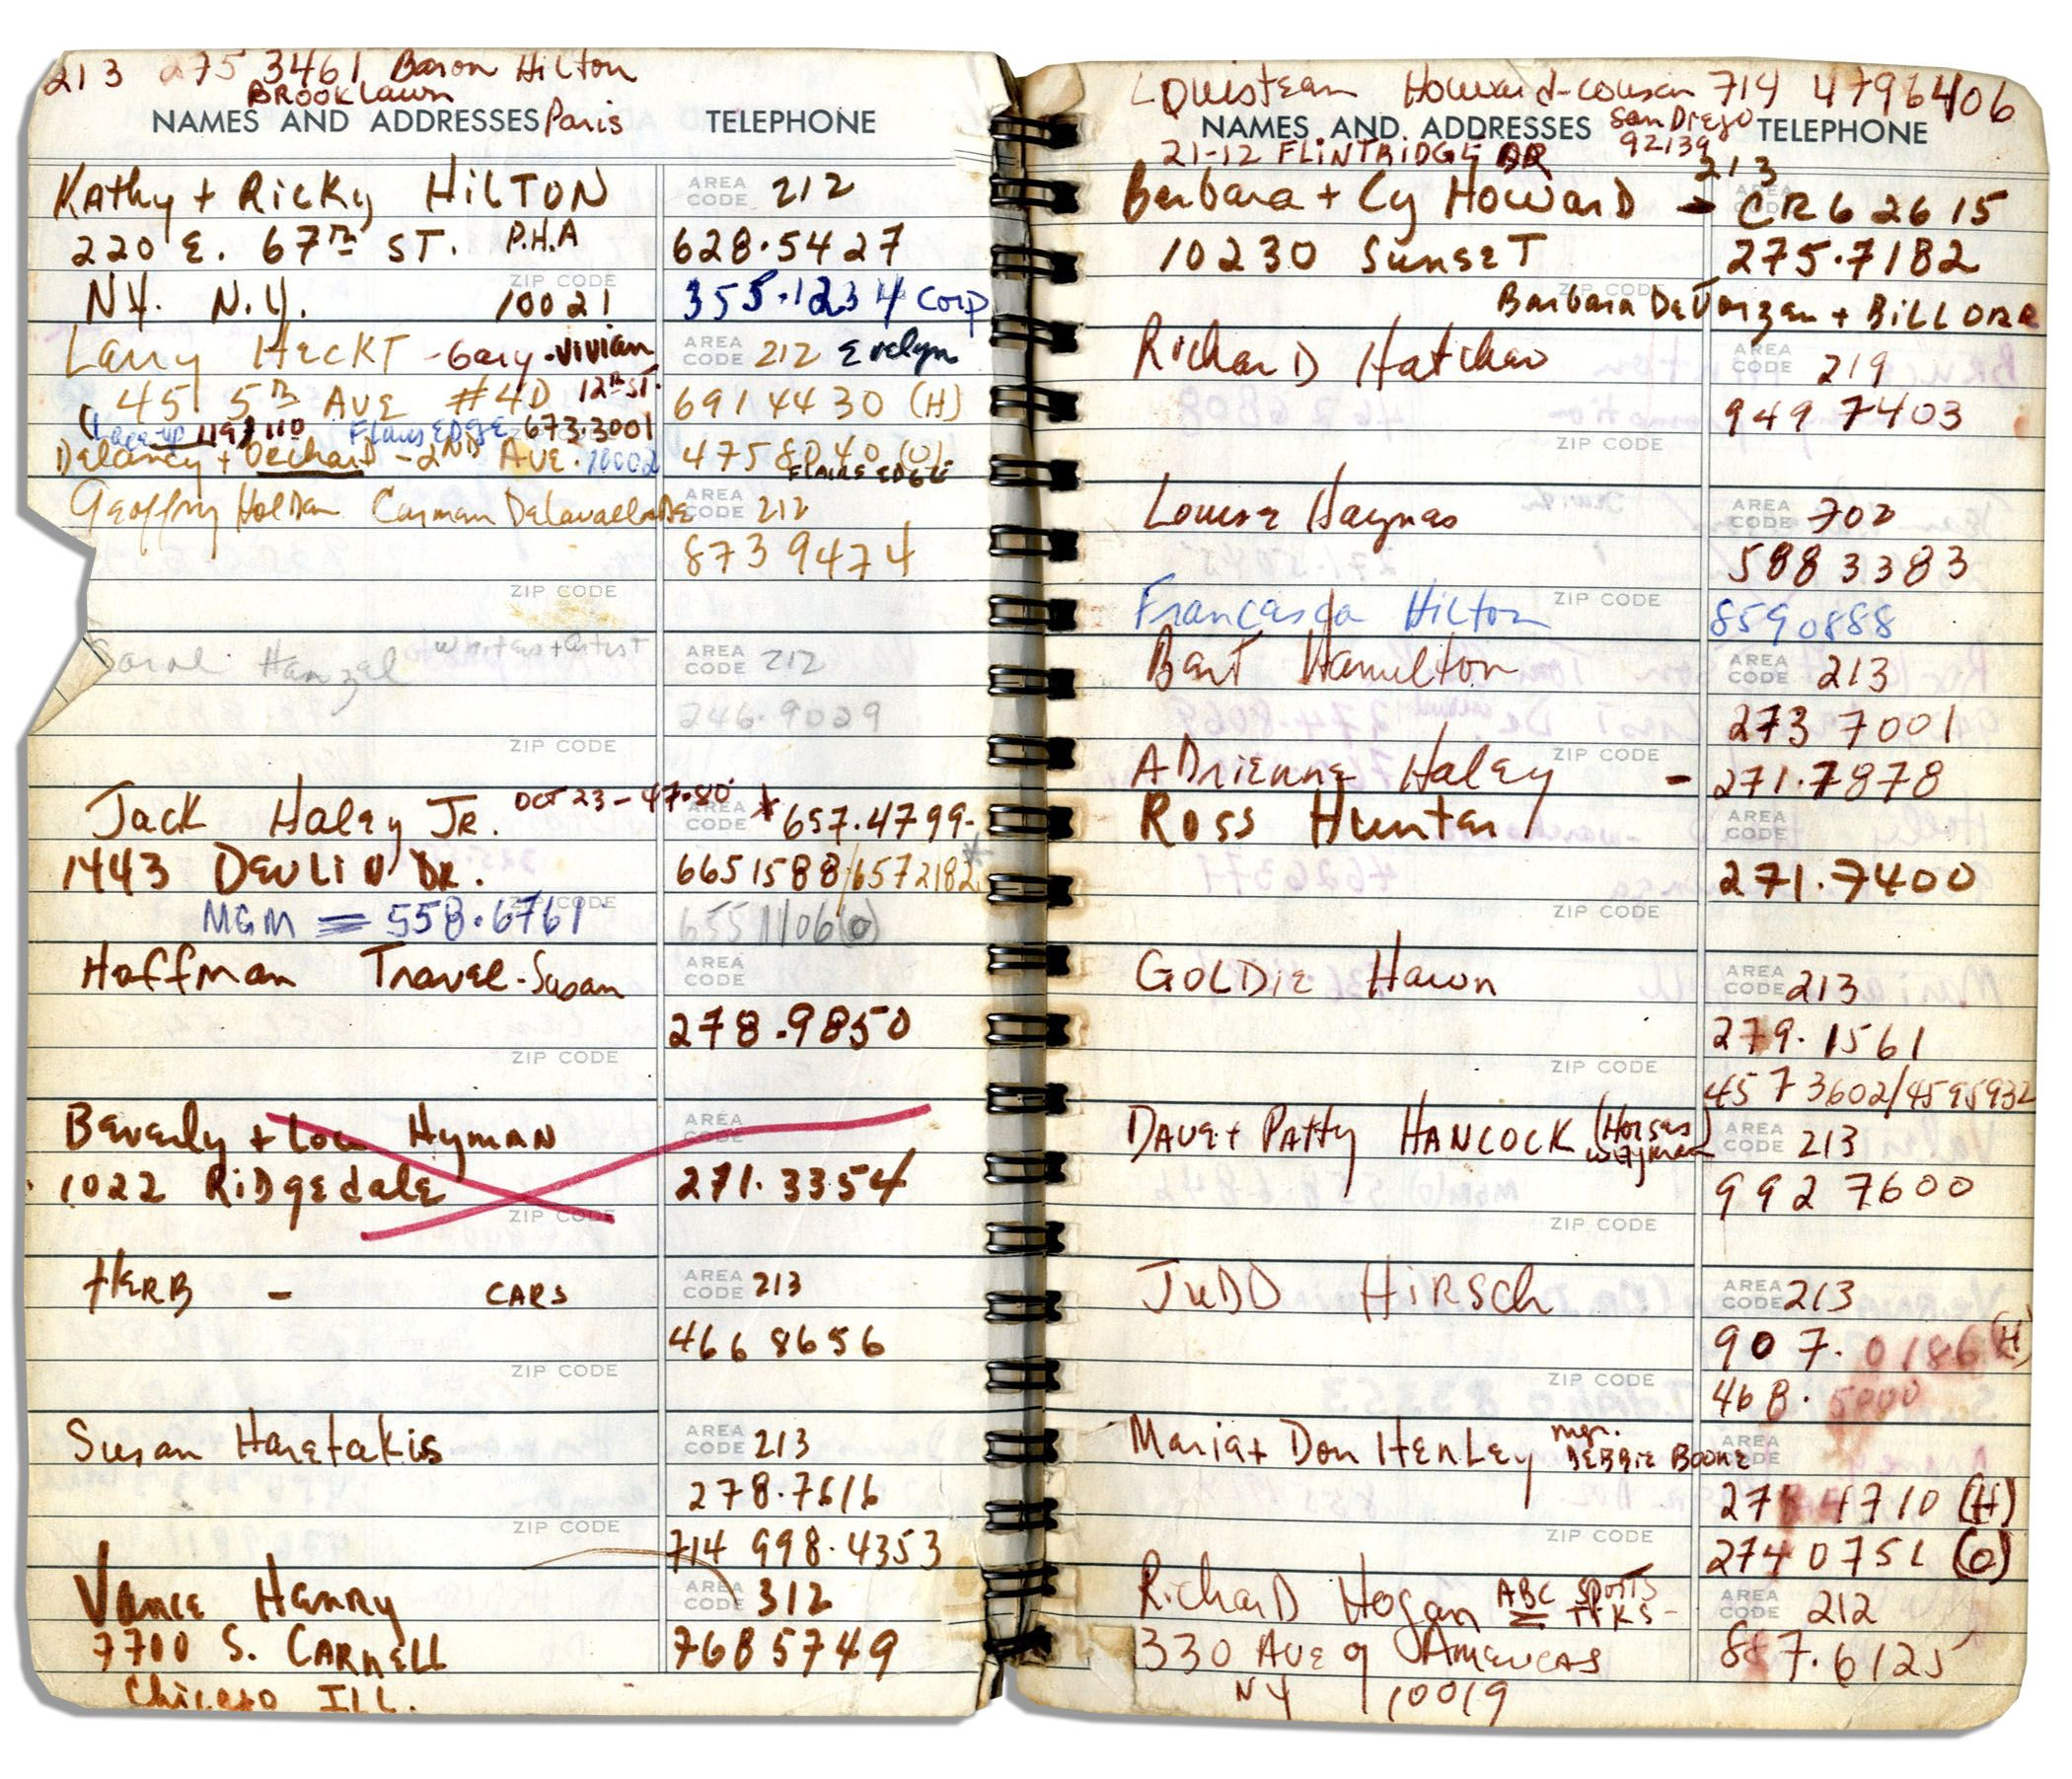 sammy davis jrs personal address book containing the names addresses of over